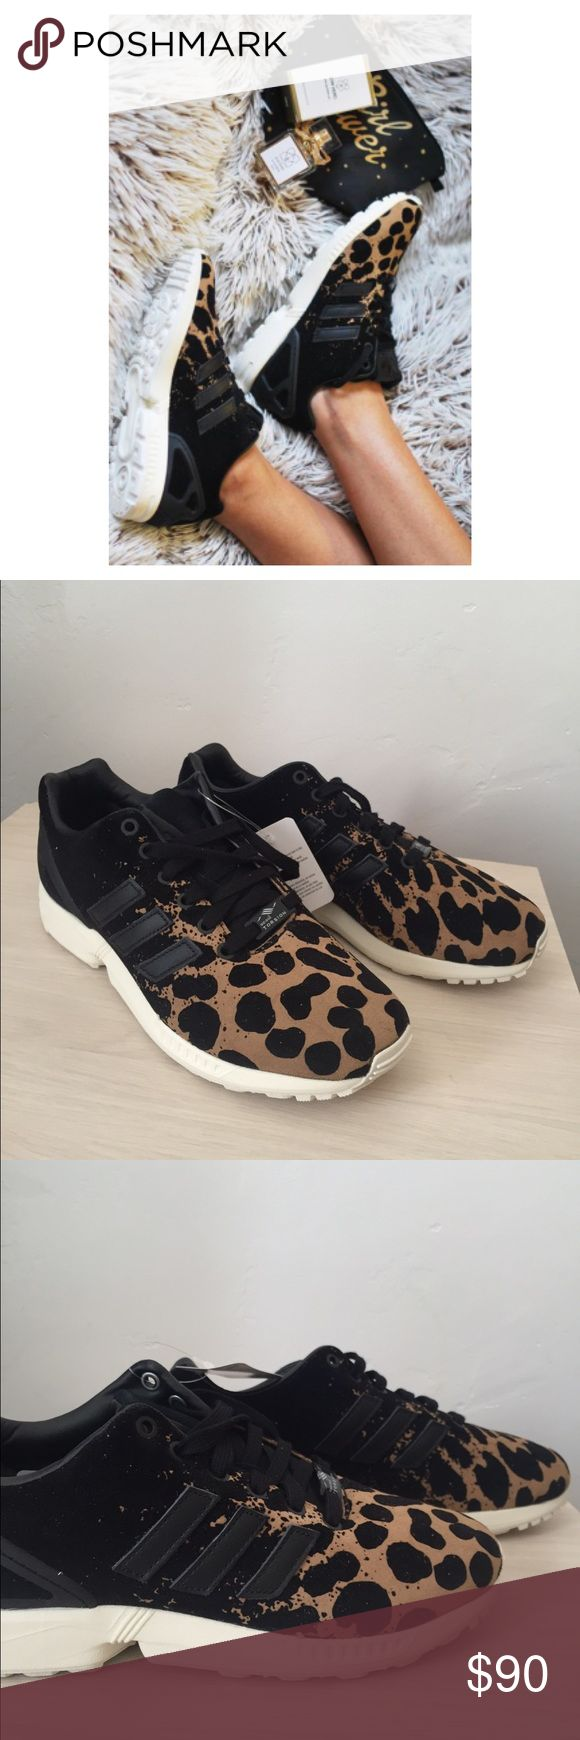 New Adidas Cheetah Shoes 6.5 New Adidas Cheetah Women's Shoes.  Size 6.5 in perfect condition! adidas Shoes Athletic Shoes